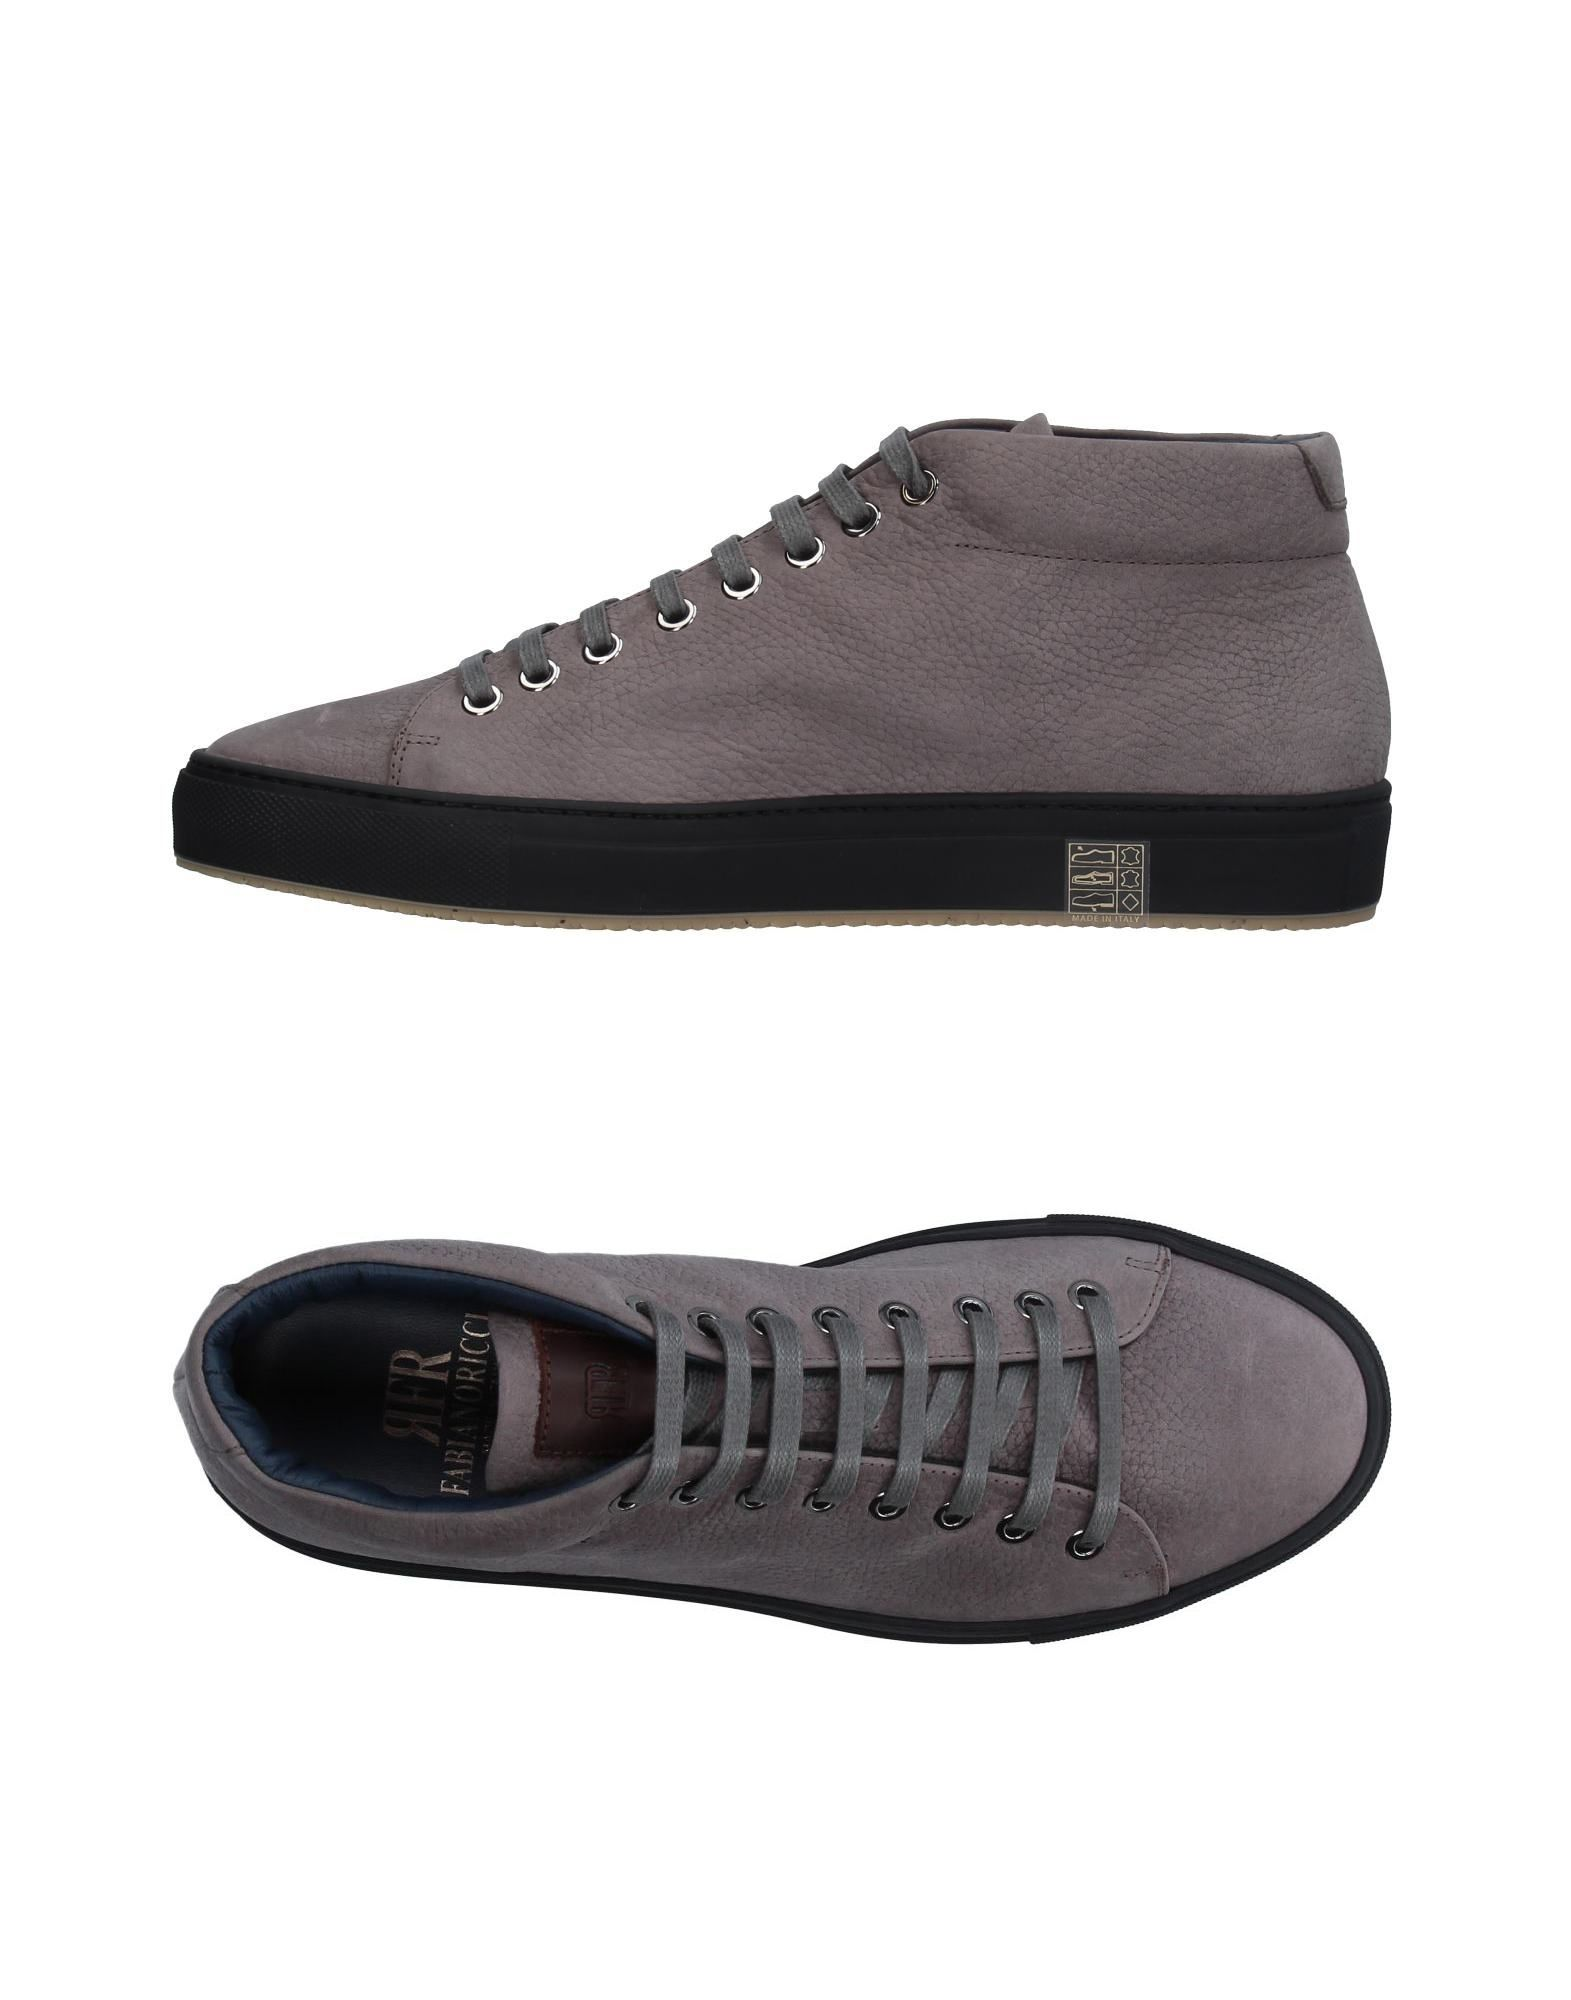 Sneakers Fabiano Ricci Homme - Sneakers Fabiano Ricci  Gris Chaussures casual sauvages